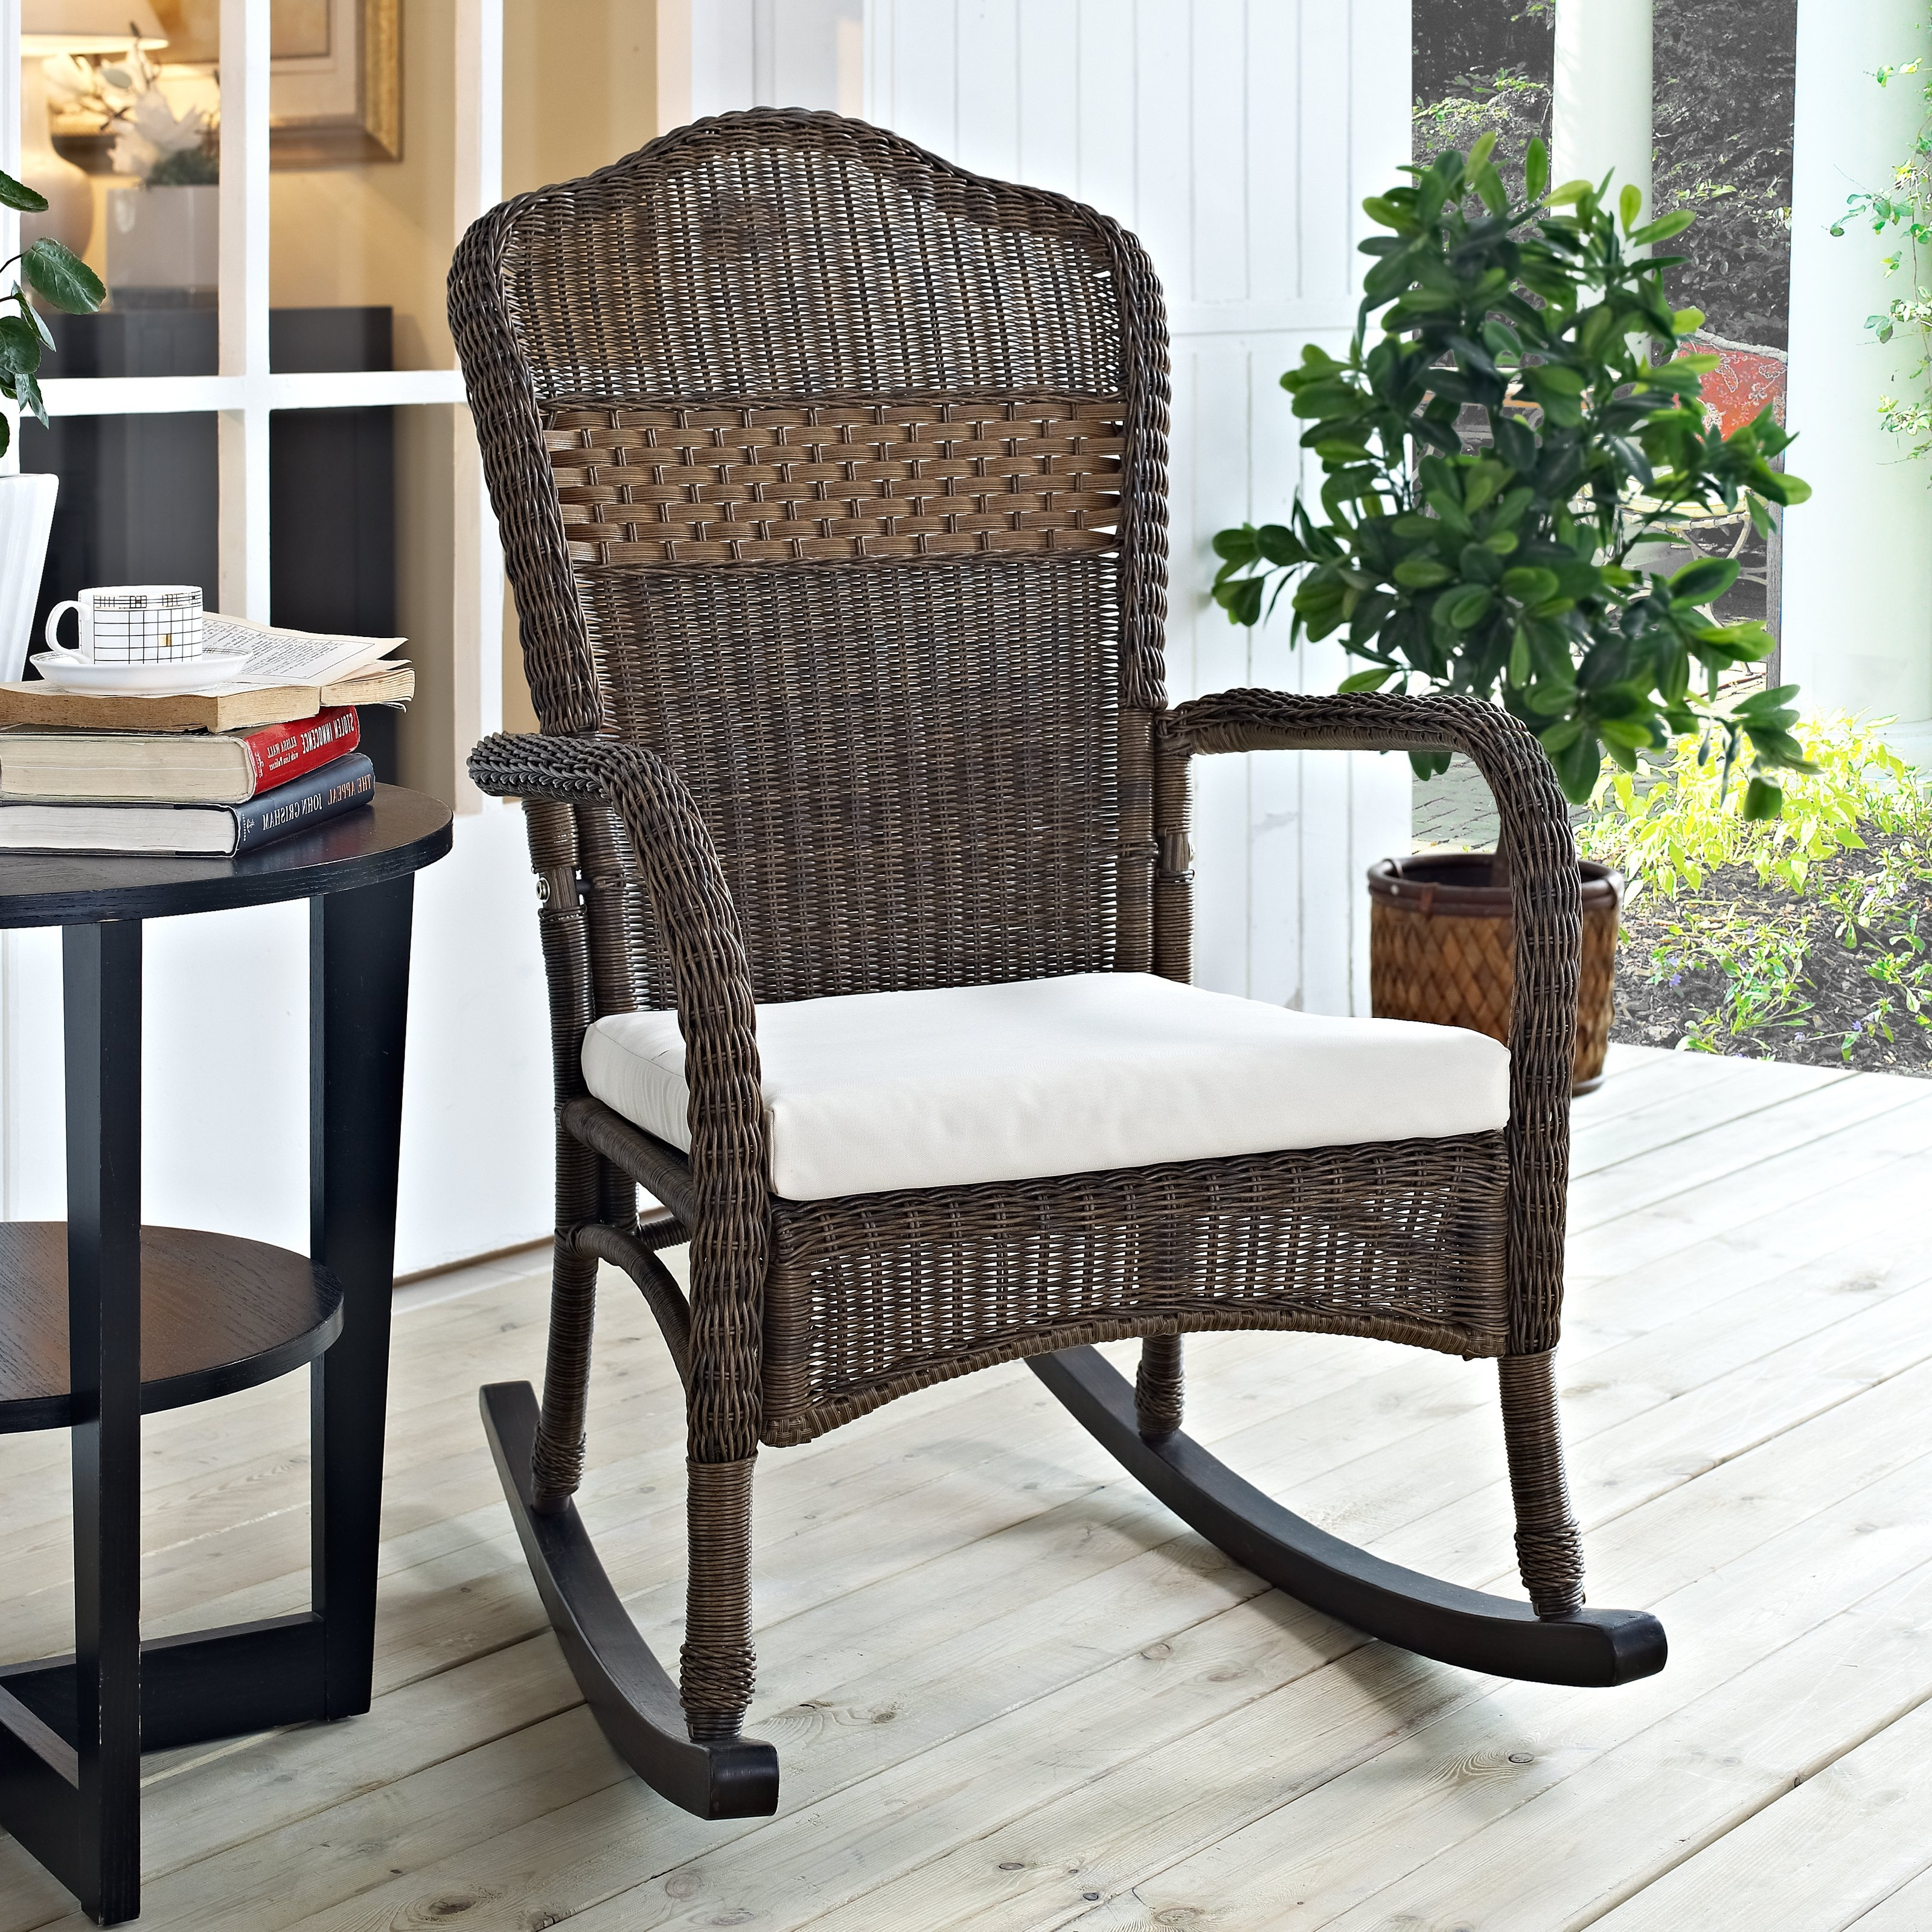 Latest Black Patio Rocking Chairs In Coral Coast Mocha Resin Wicker Rocking Chair With Beige Cushion (View 8 of 15)